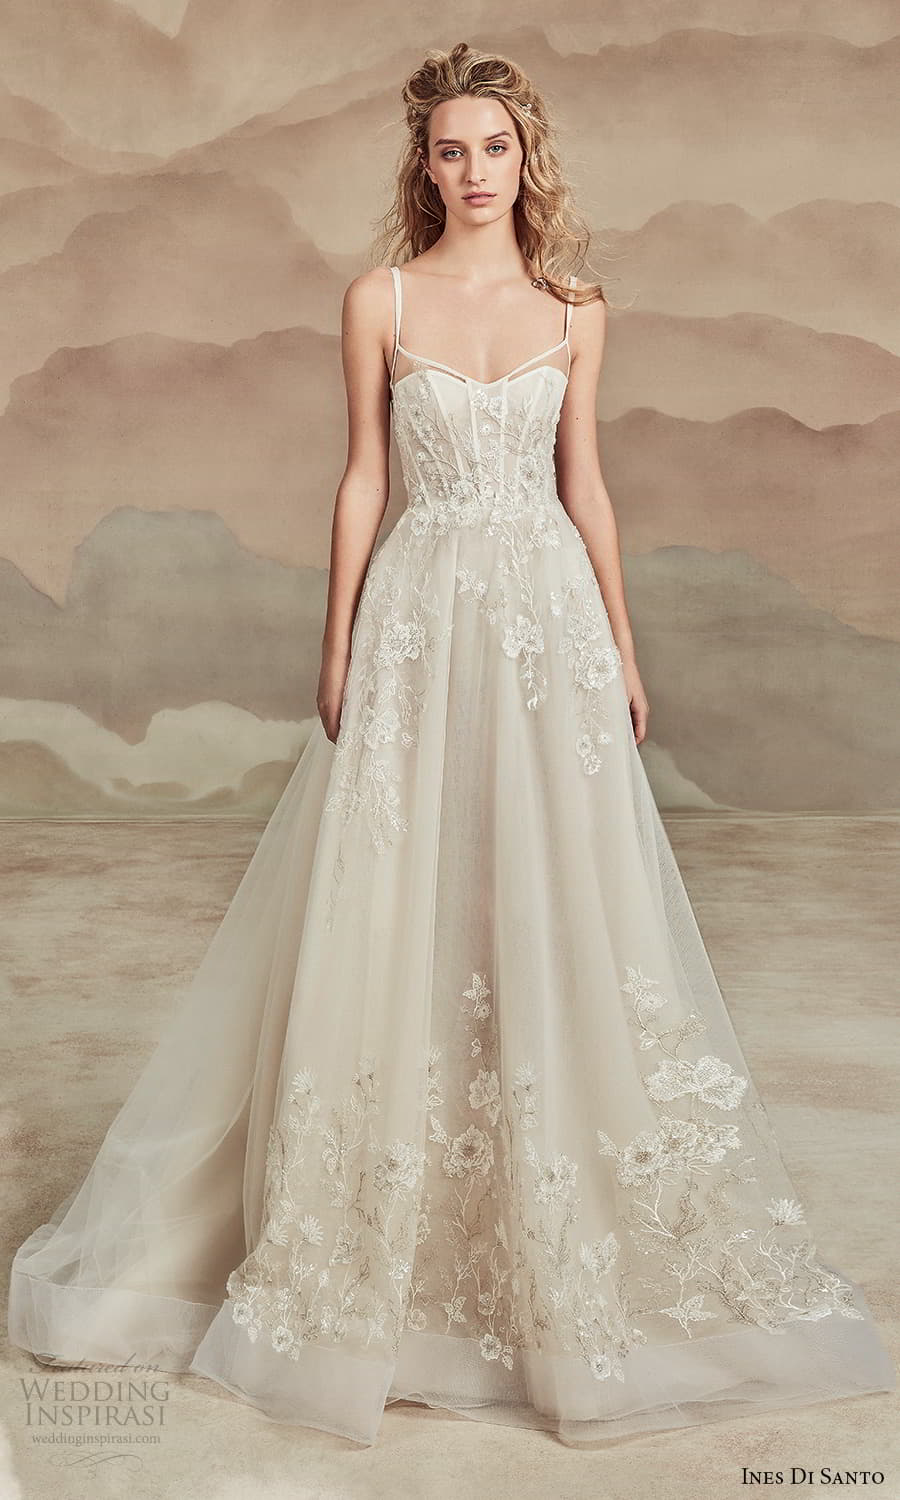 ines di santo spring 2022 bridal sleeveless straps semi sweetheart neckline fully embellished a line ball gown wedding dress chapel train (15) mv